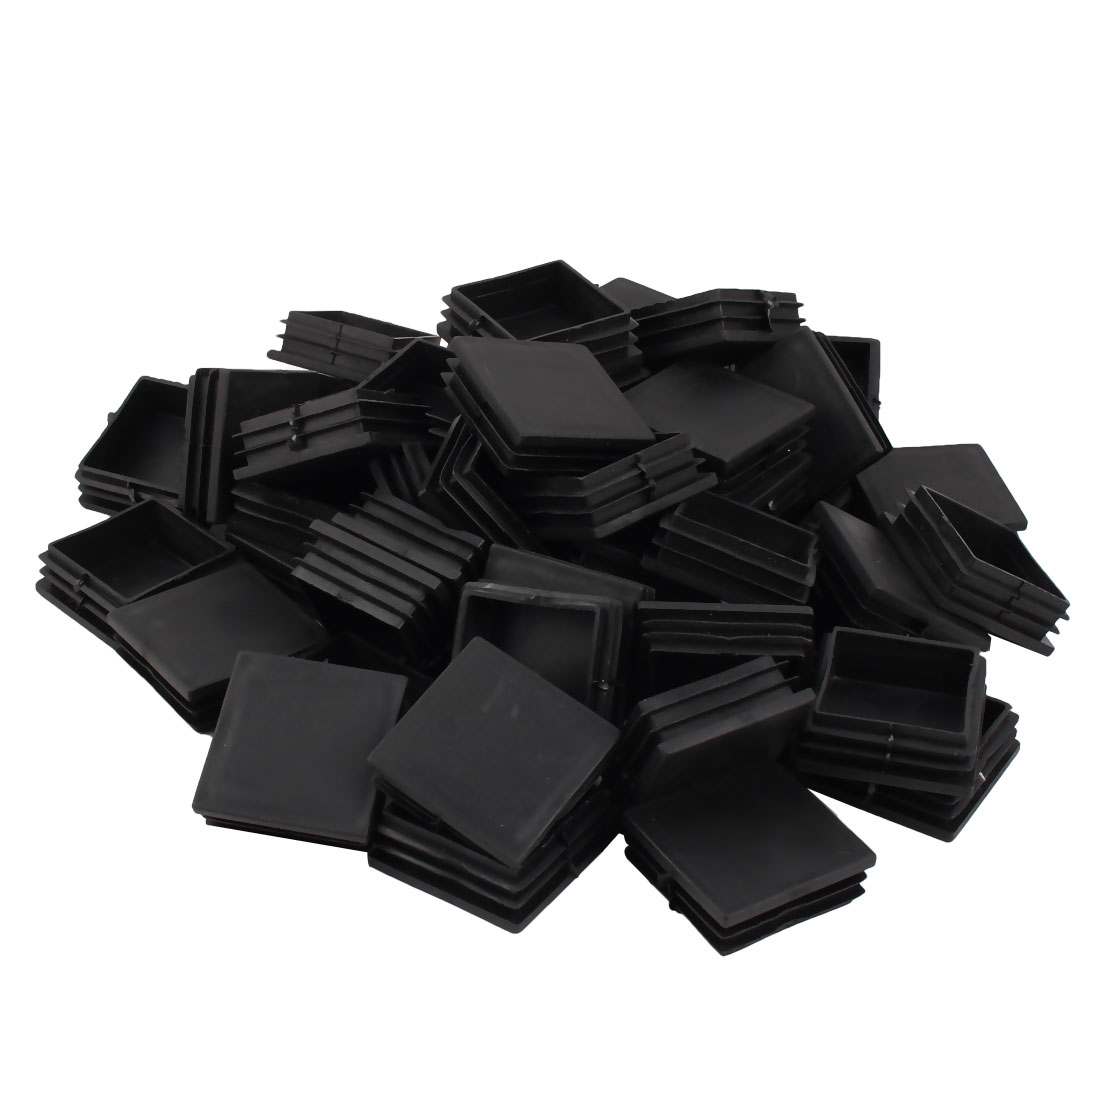 50mm x 50mm Square Furniture Legs Flat Base Plastic Tube Pipe Feet Insert Cap 50pcs Black